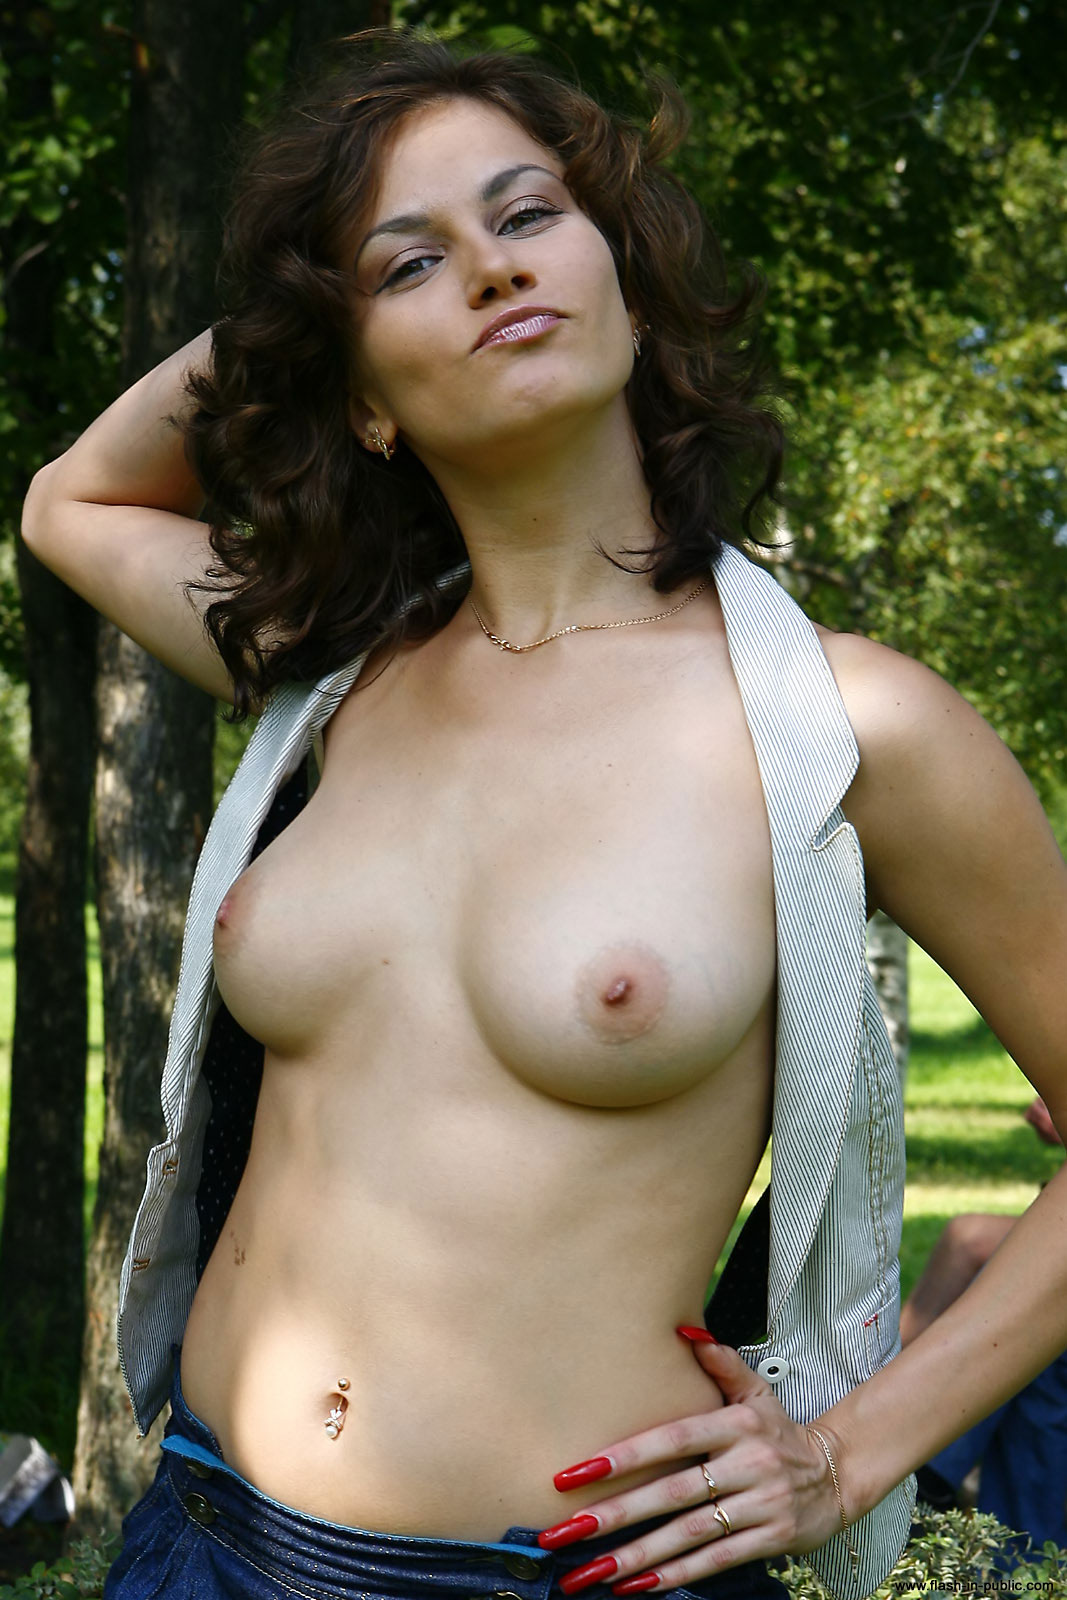 marianna-h-nude-park-flash-in-public-03